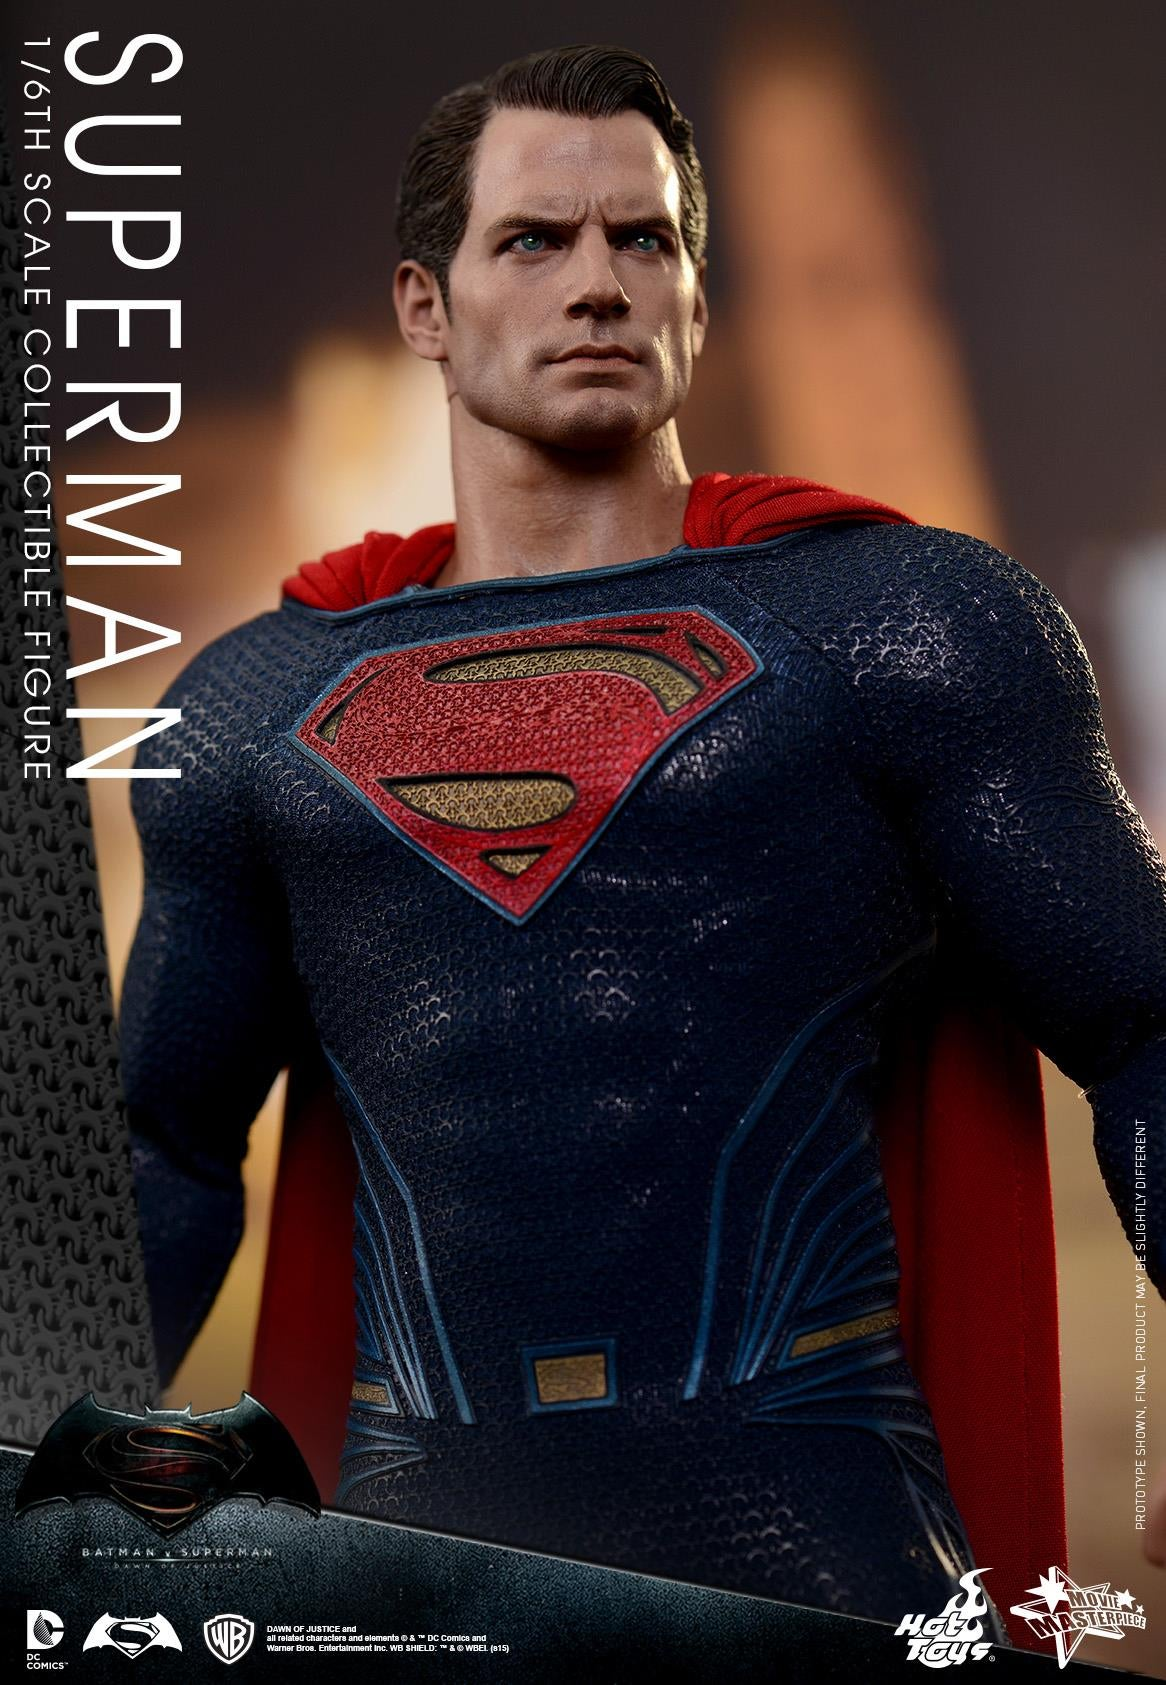 [Action Figures] Todo sobre Action Figures, Hot Toys, Sideshows - Página 6 Bvs-hot-toys-superman-5-162890